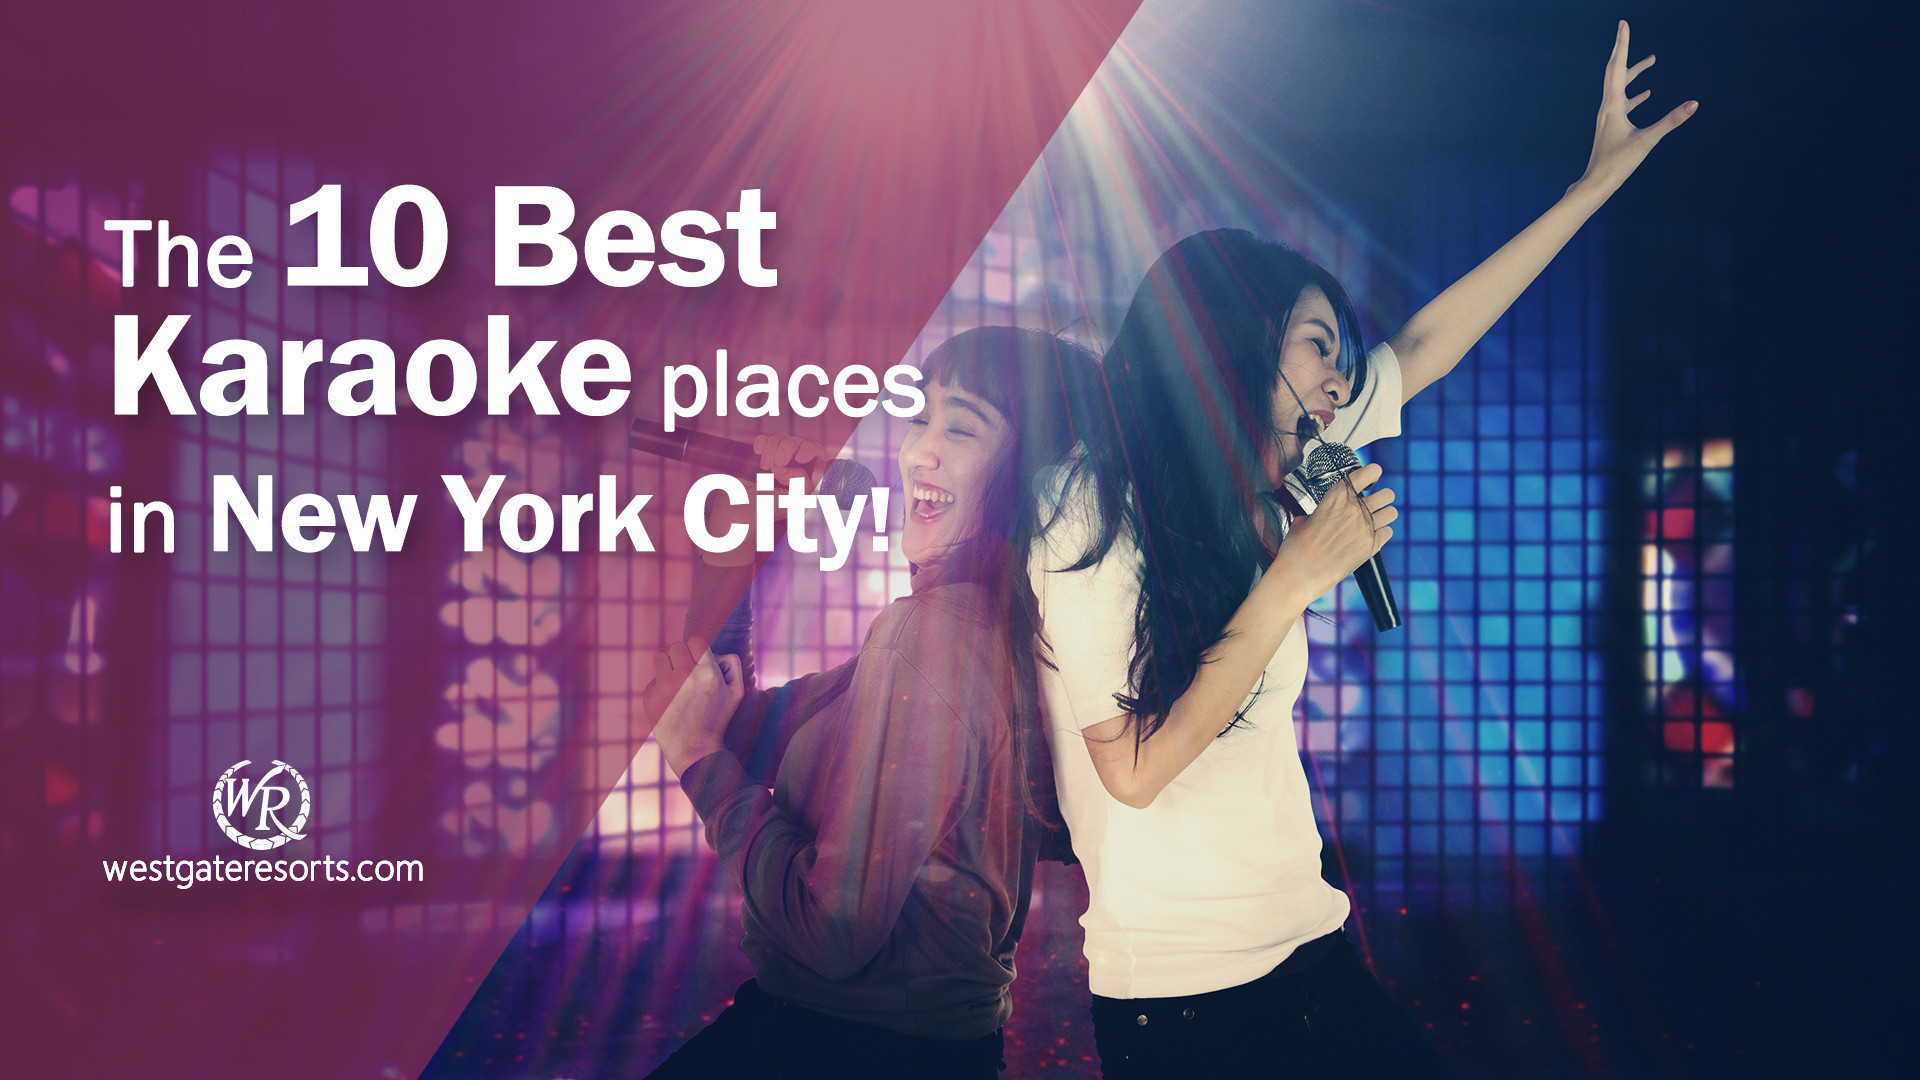 The 10 Best Karaoke Places in NYC!